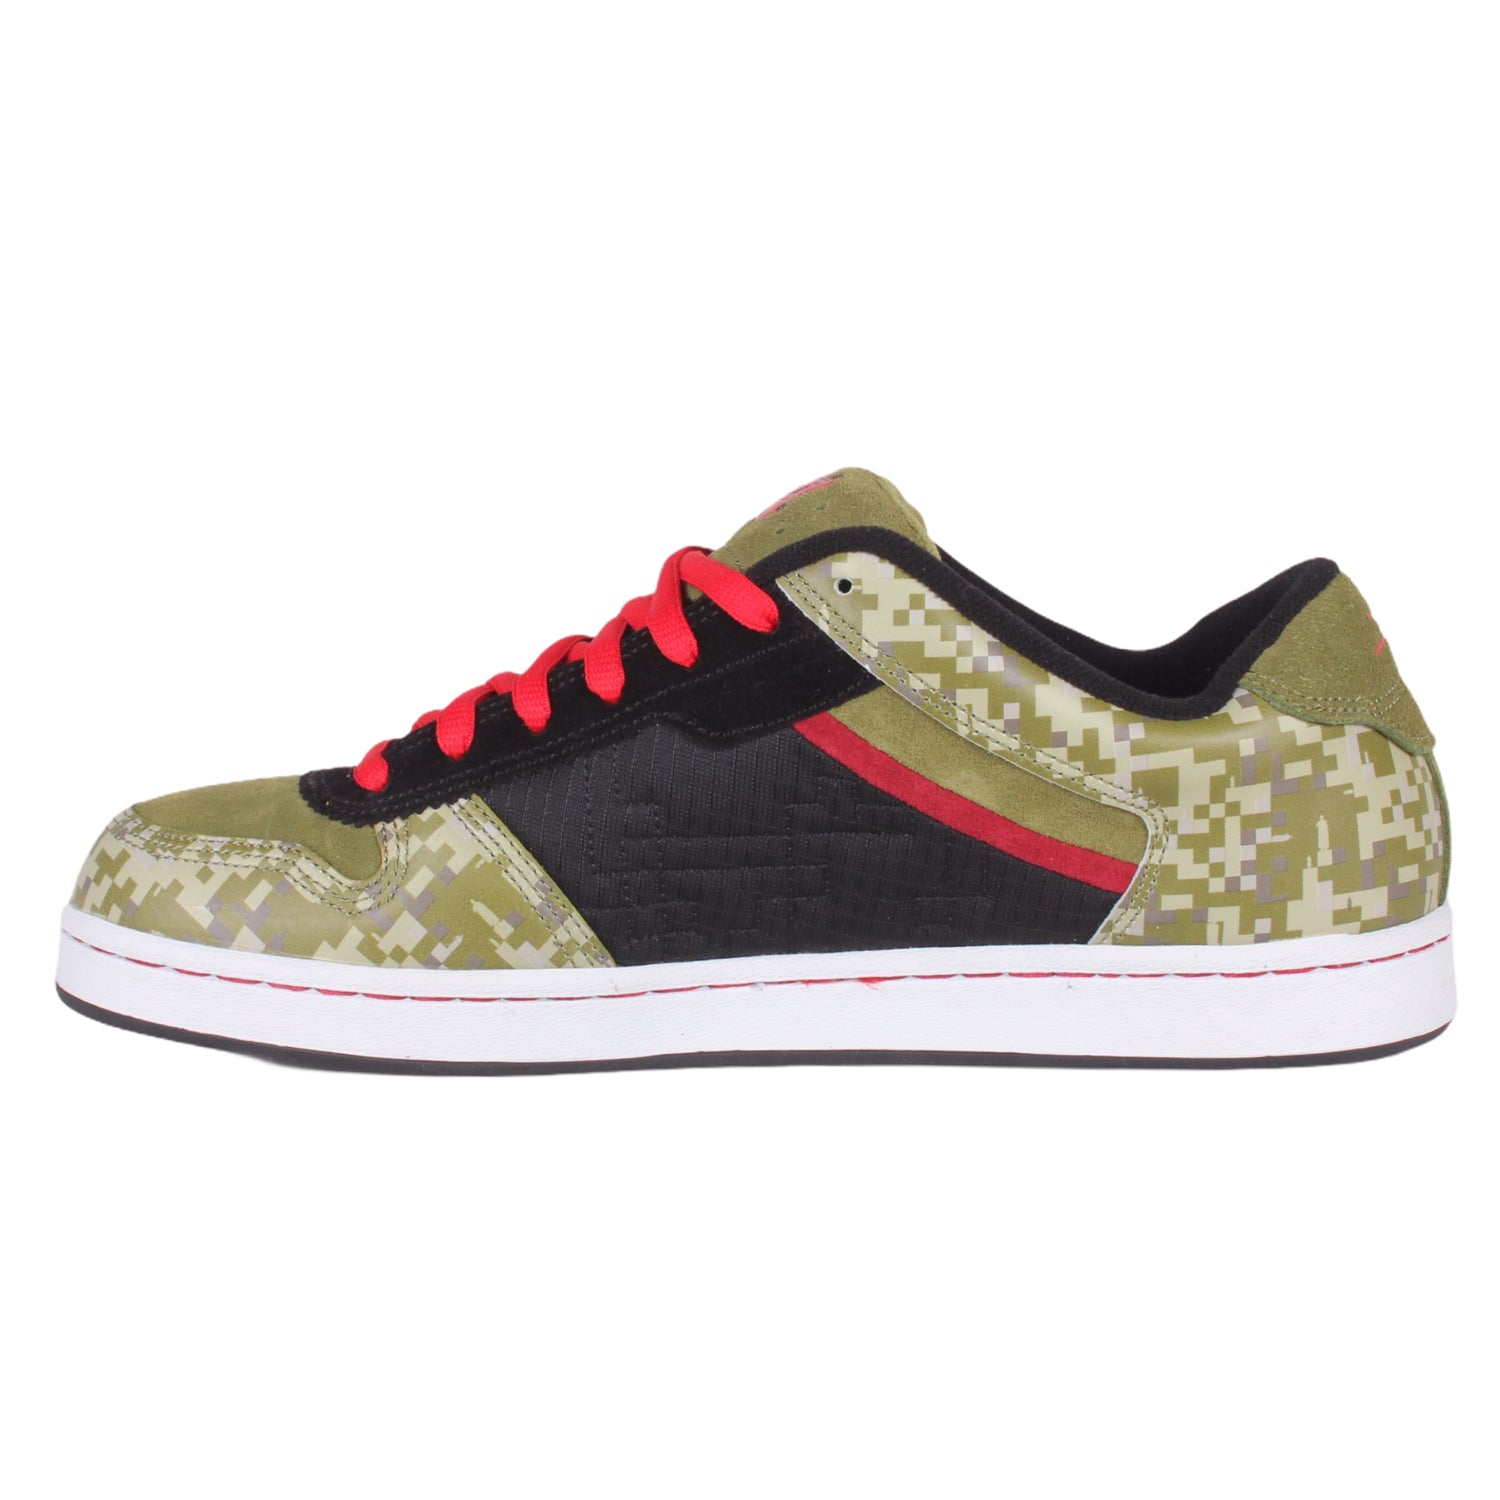 Overripe Lakai Howard 4 Art Dump Green Leather/ Black/ Abeyta (2006)